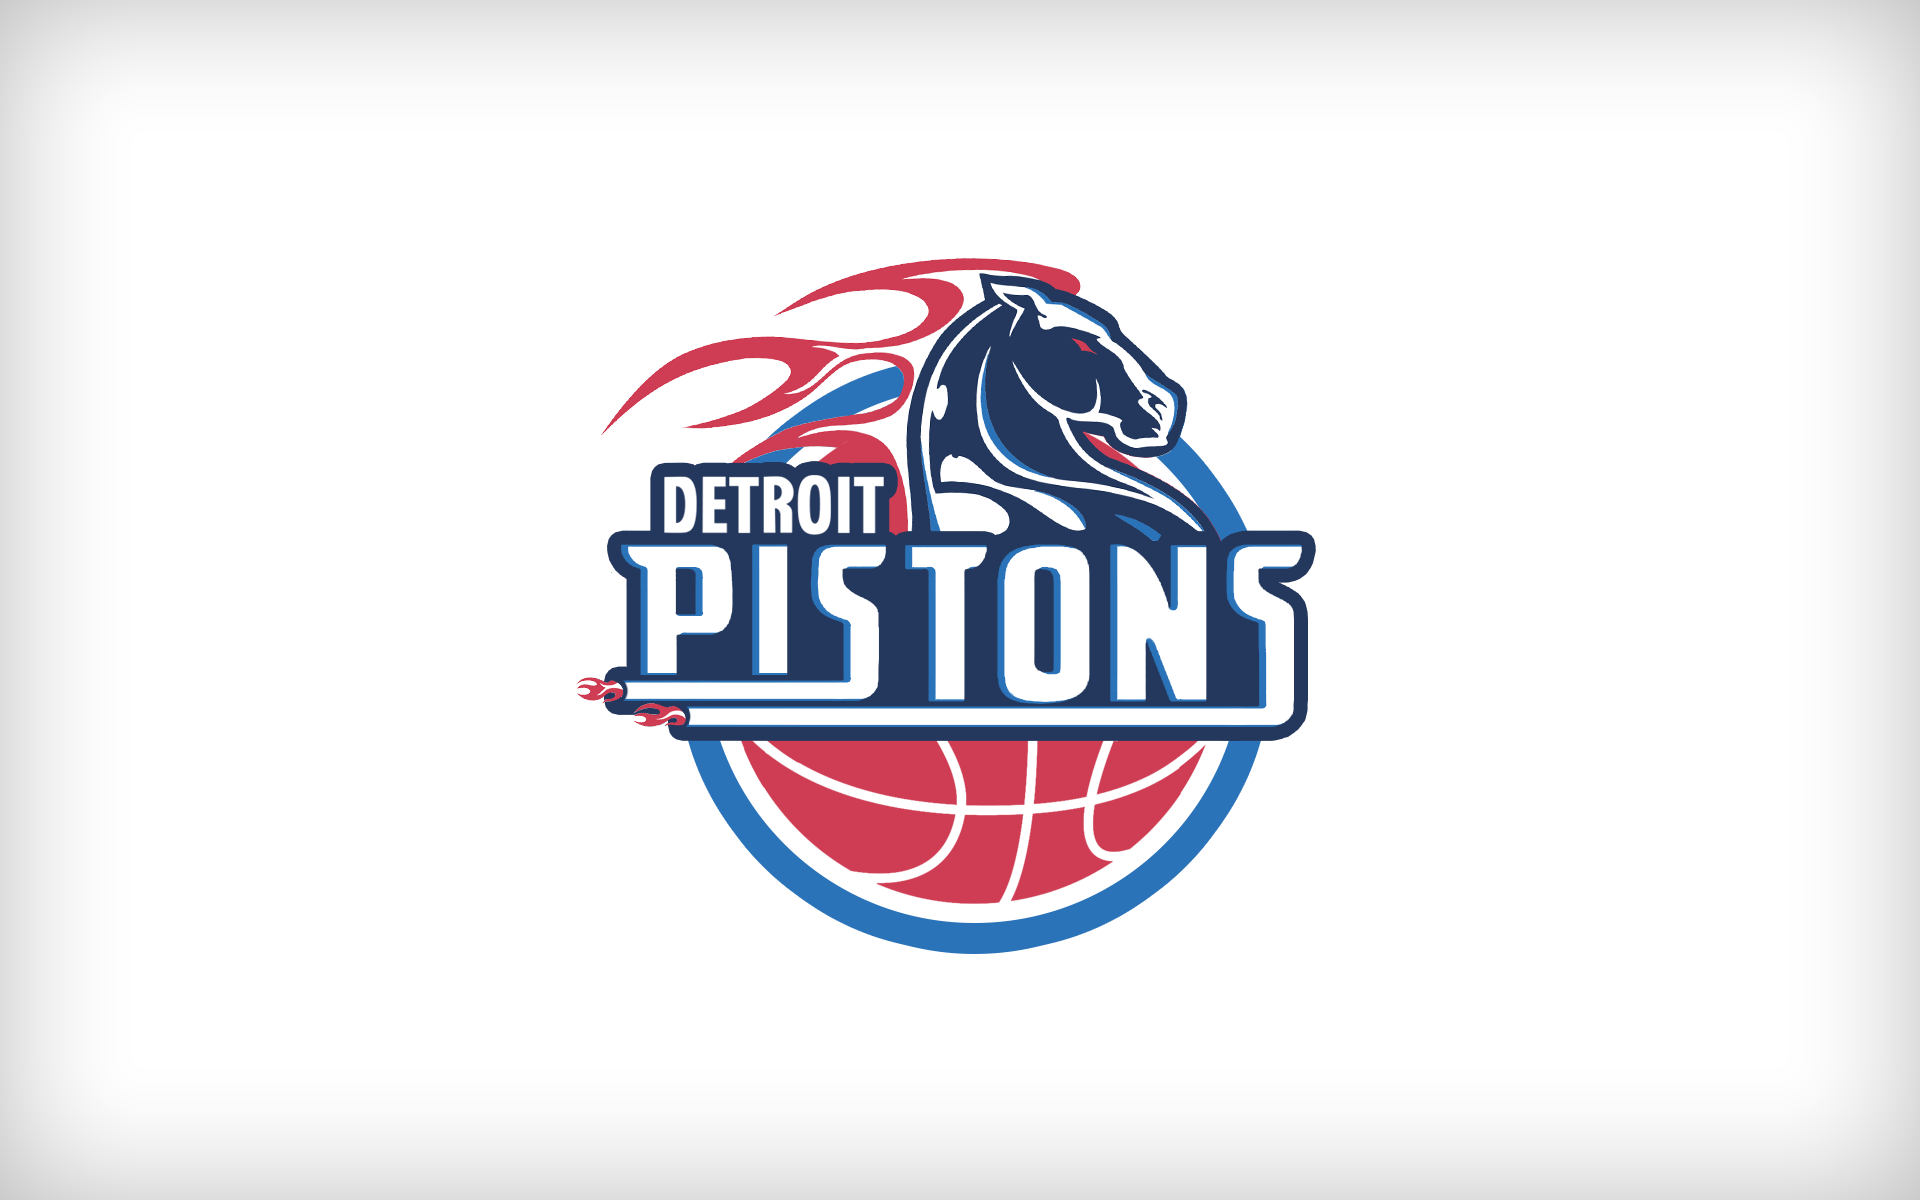 Redesigning NBA Team Logos with Elements of Old and New.